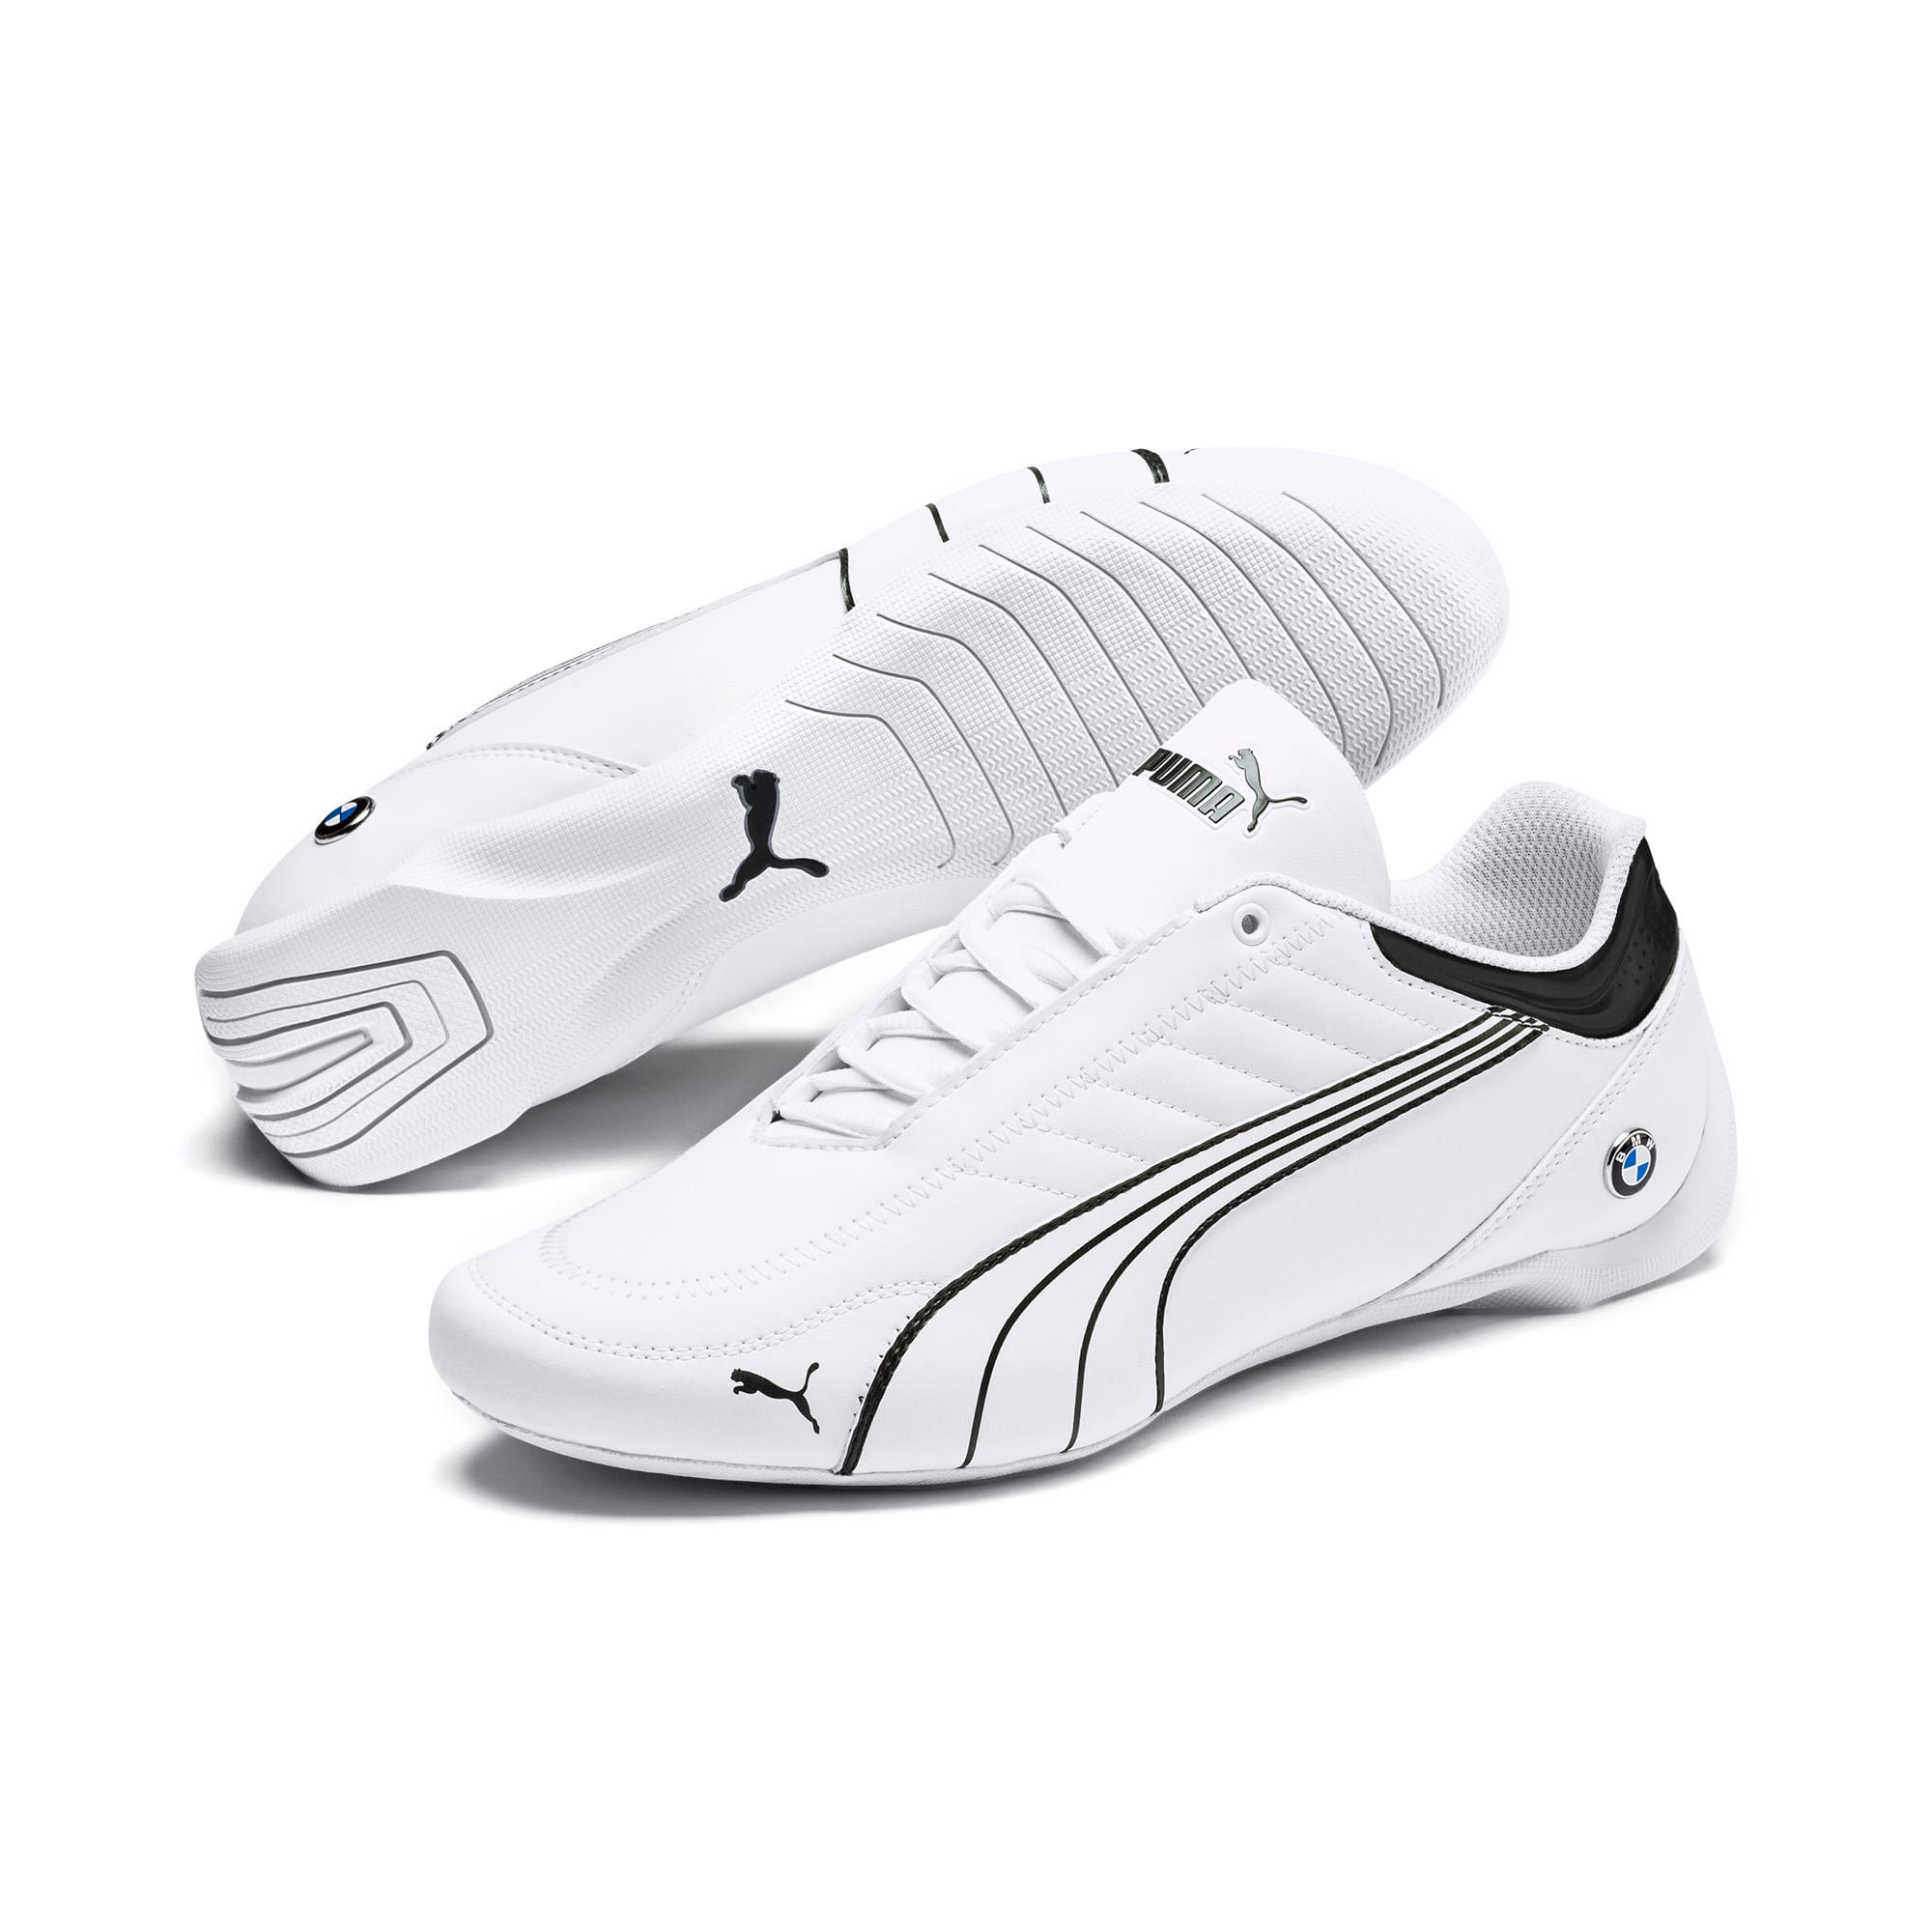 Miniatura 3 de Zapatos BMW M Motorsport Future Kart Cat, Puma White-Puma Black, mediano